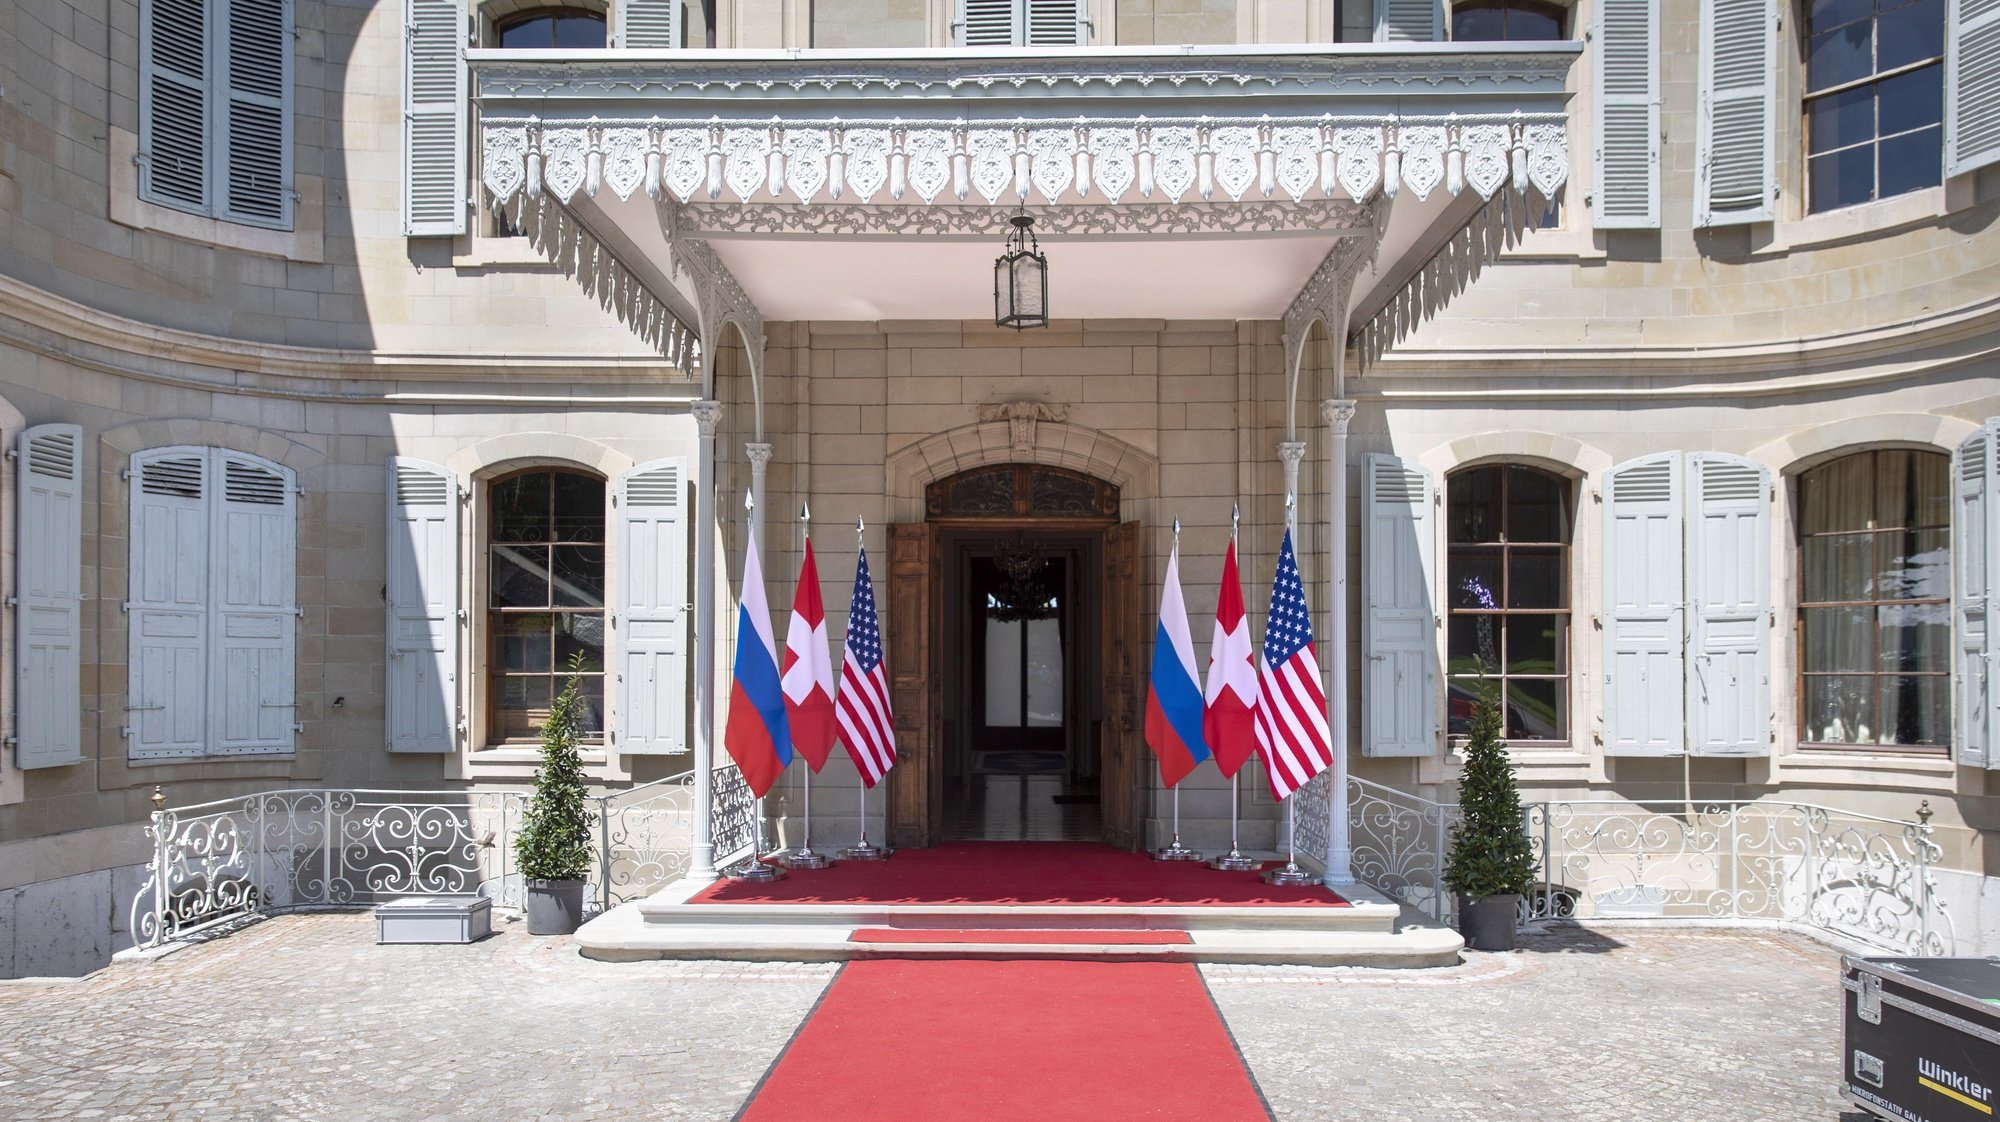 epa09273033 Flags of the US, Russia and Switzerland photographed in front of the entrance of the villa La Grange, one day prior to the US - Russia summit in Geneva, Switzerland, 15 June 2021. The meeting between US President Joe Biden and Russian President Vladimir Putin is scheduled in Geneva for 16 June 2021.  EPA/PETER KLAUNZER